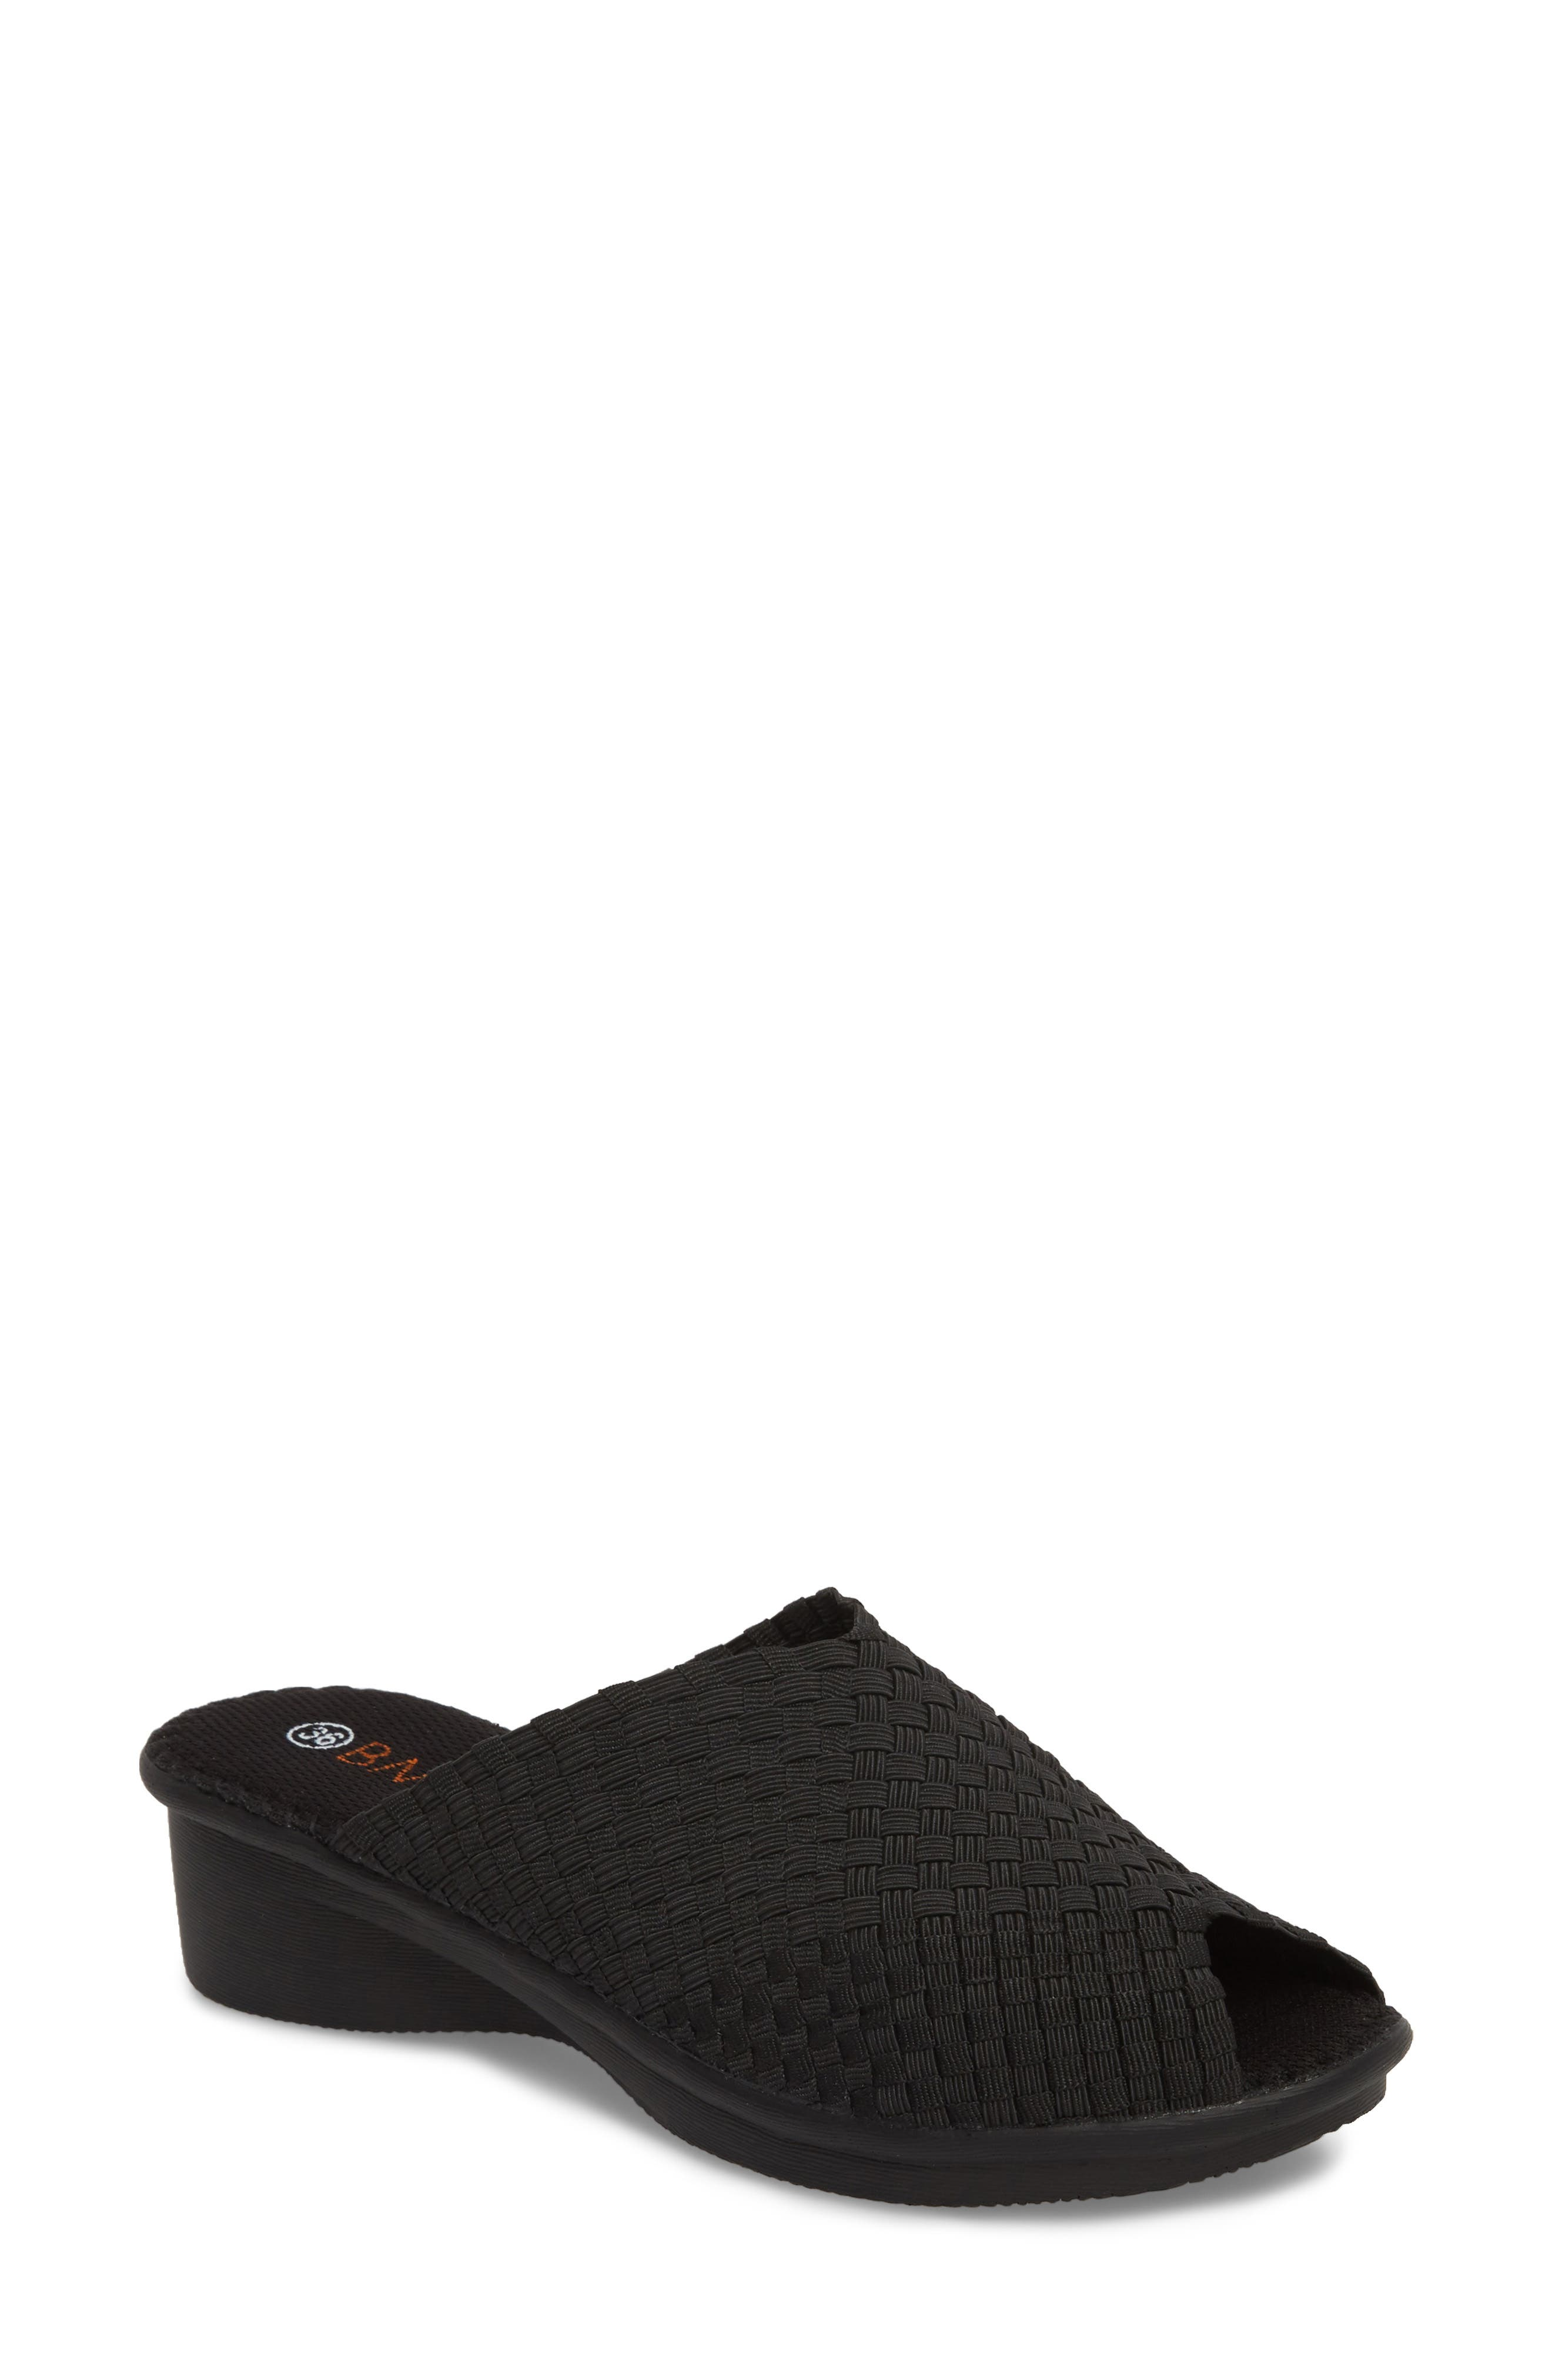 BERNIE MEV. Cyrene Wedge Sandal, Main, color, BLACK FABRIC